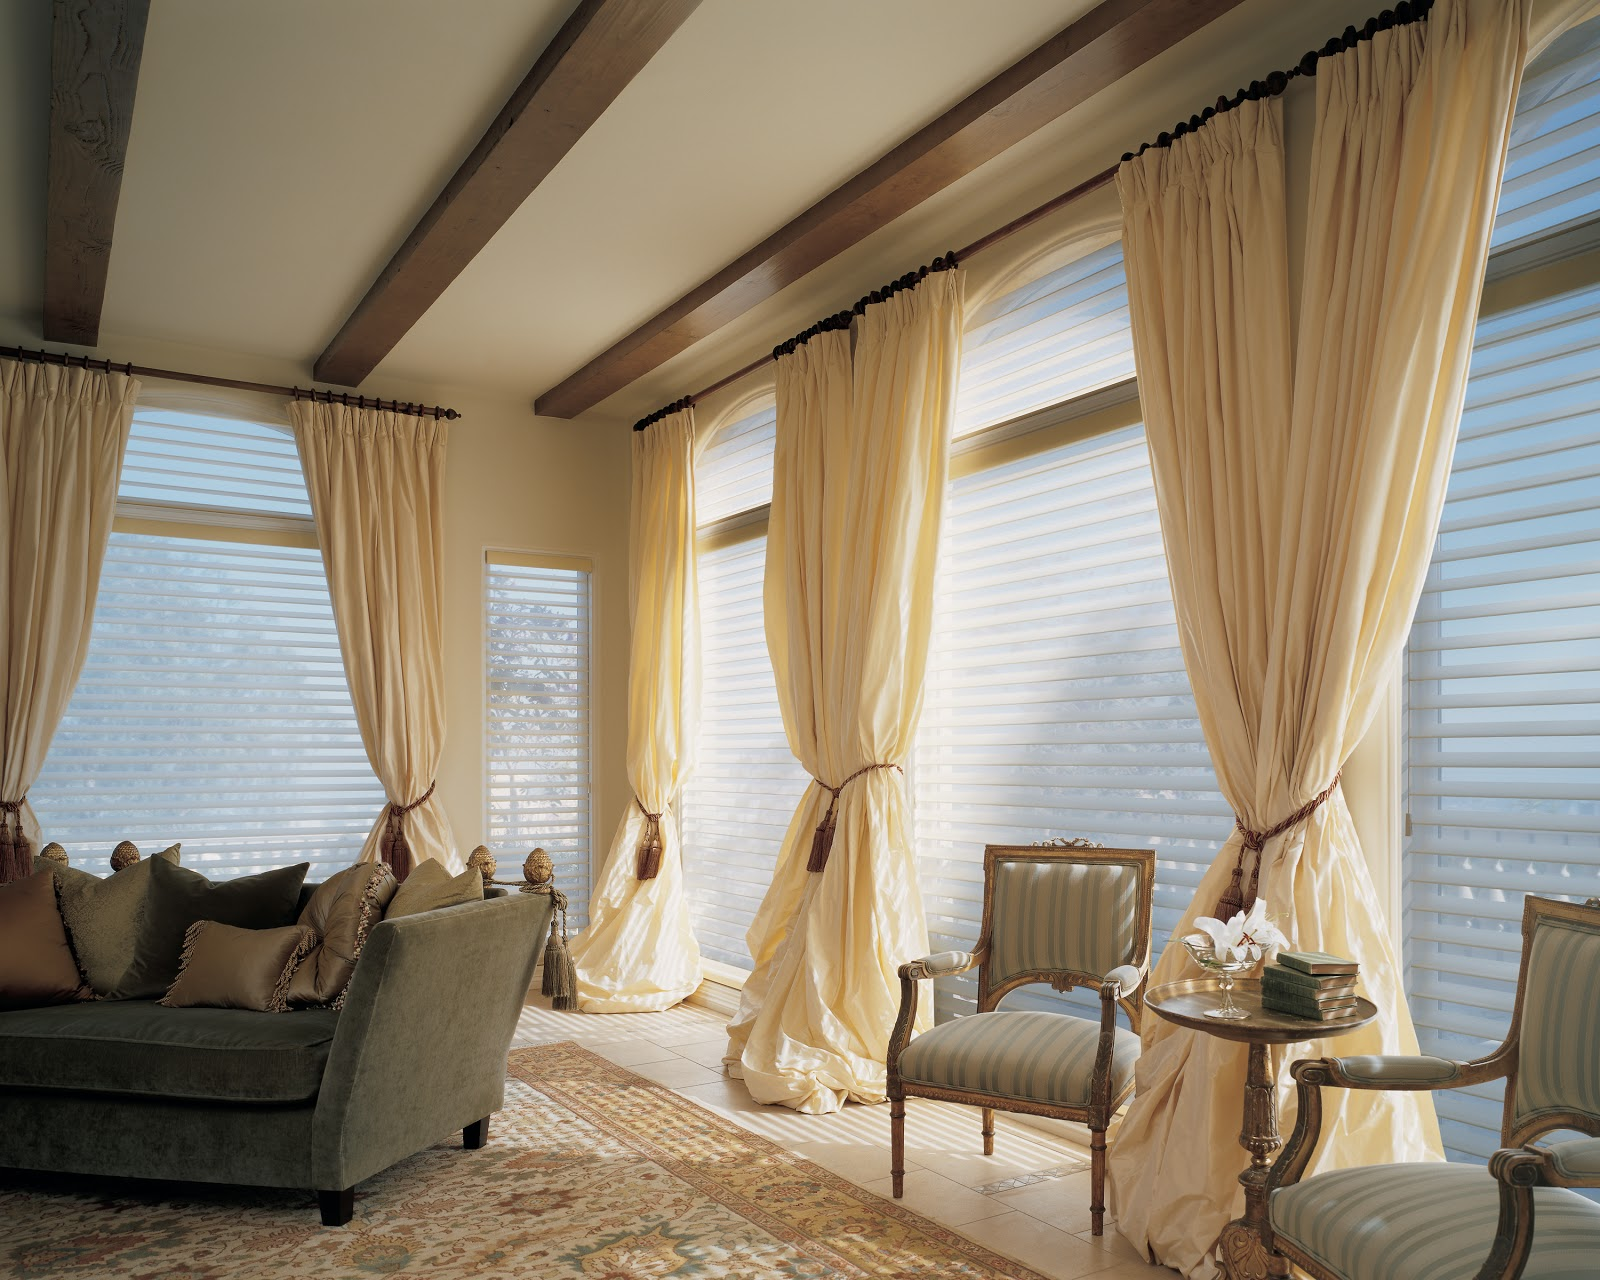 in salt windows city normandy utah building blinds window budget wood dpp lake blind peach for products